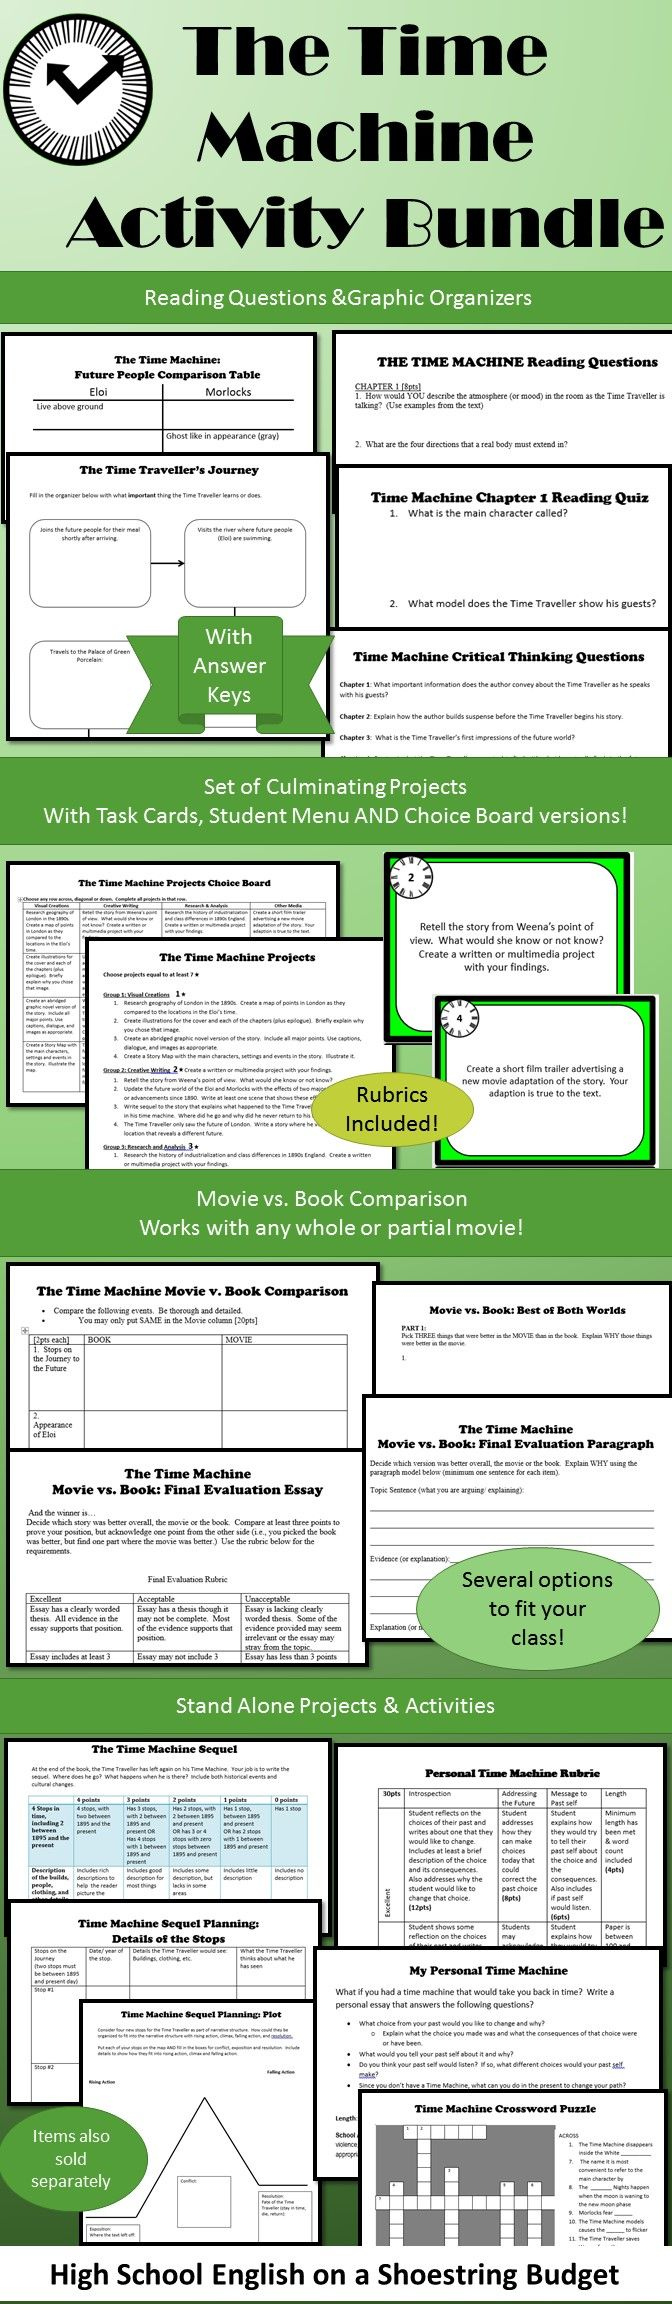 Flexible set of activities for use with the Time Machine.  Lots of options including reading and quiz questions, Movie vs. Book, and several culminating projects. $